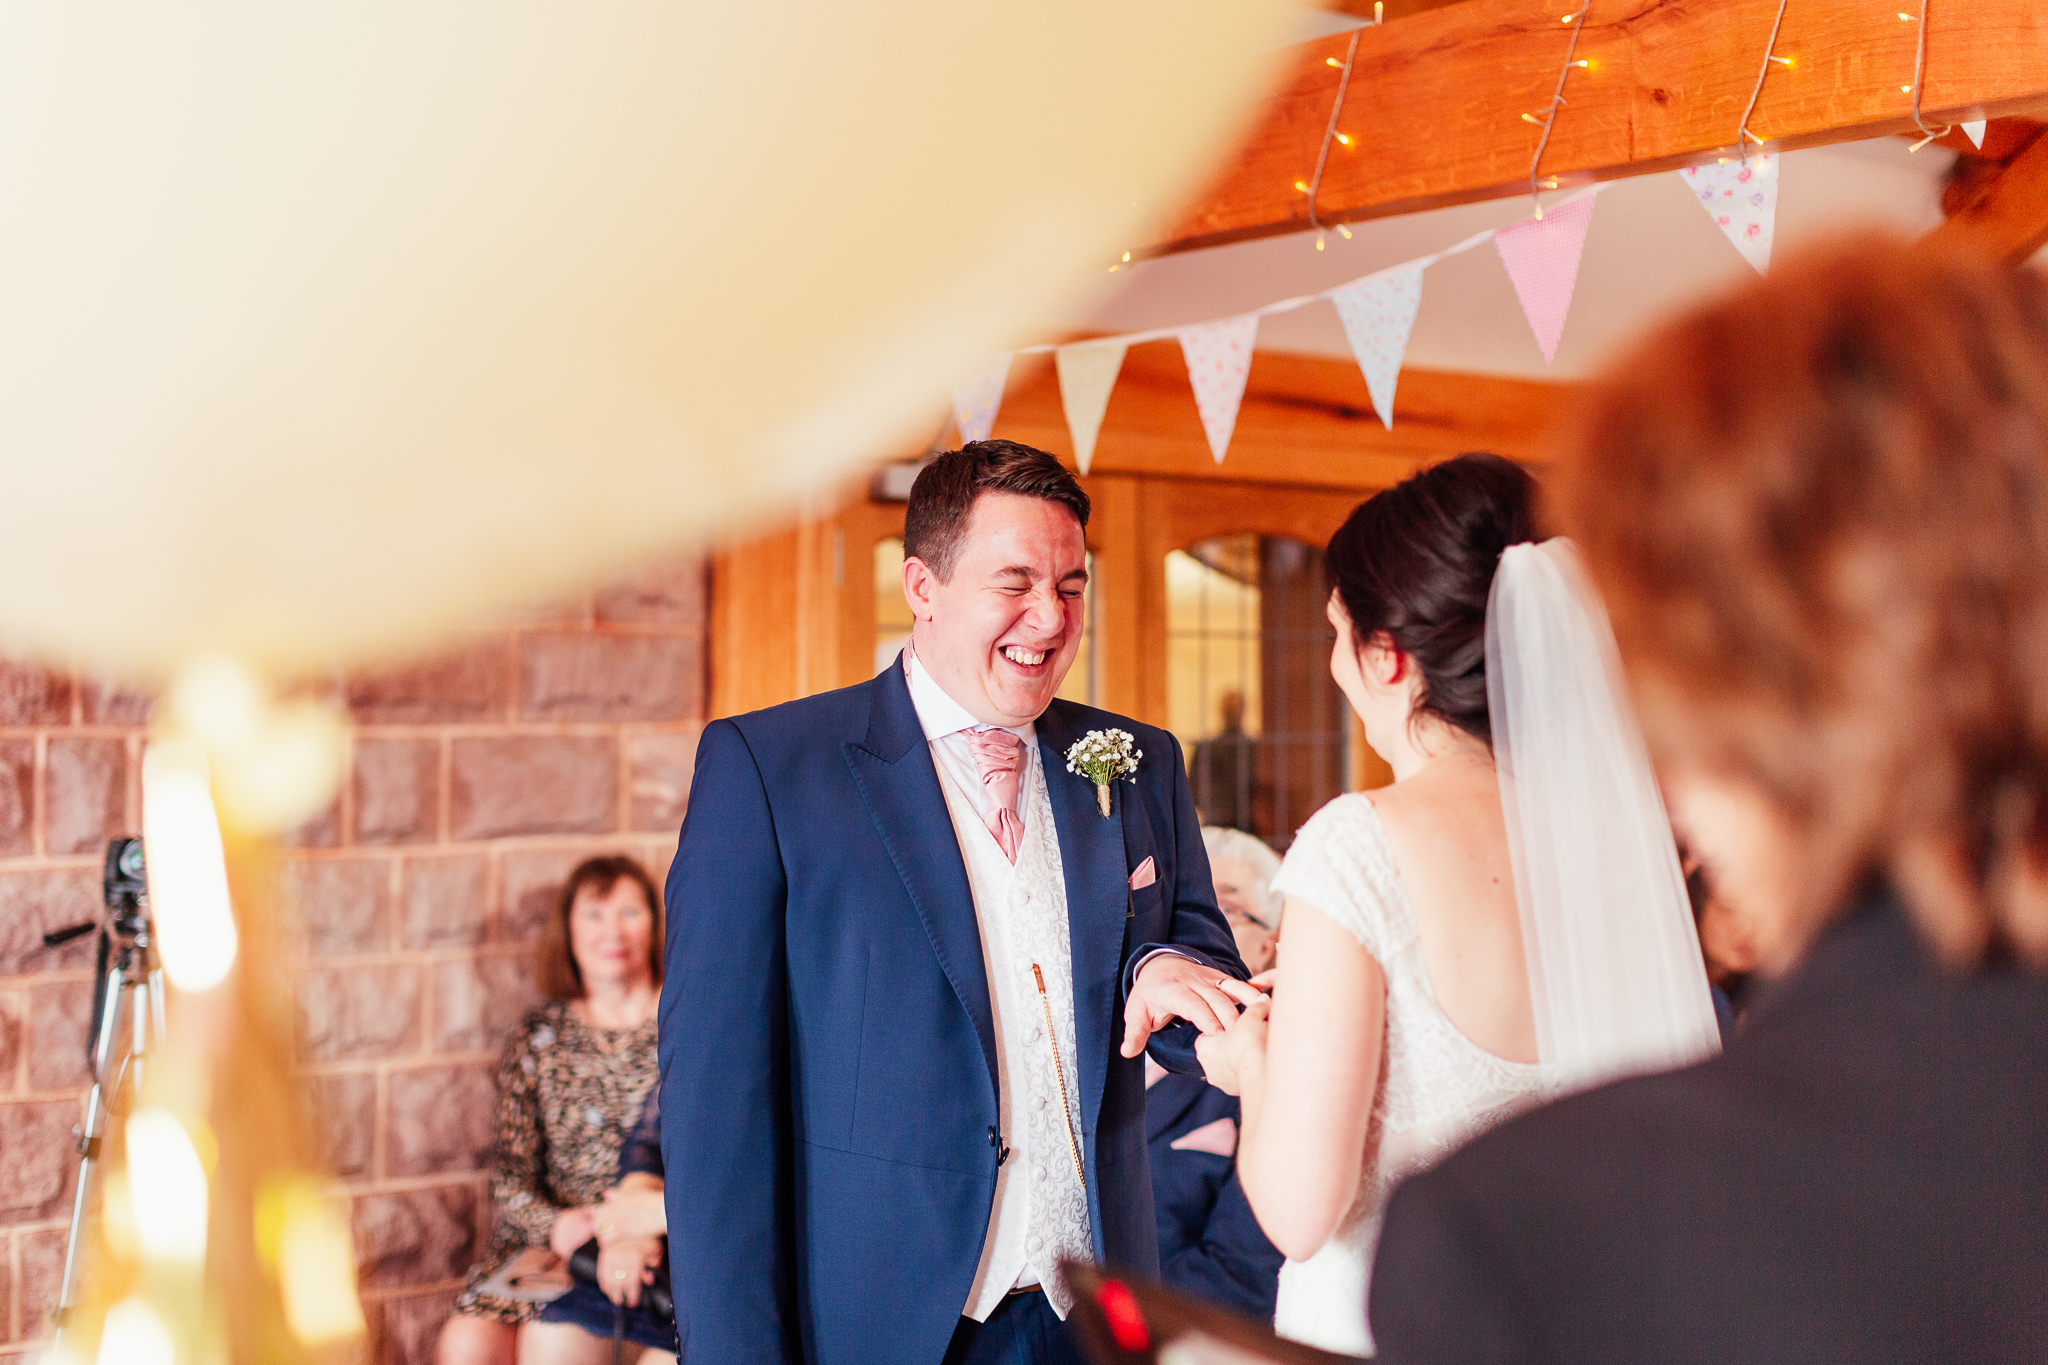 Heaton-House-Farm-Cheshire-Wedding-16.jpg